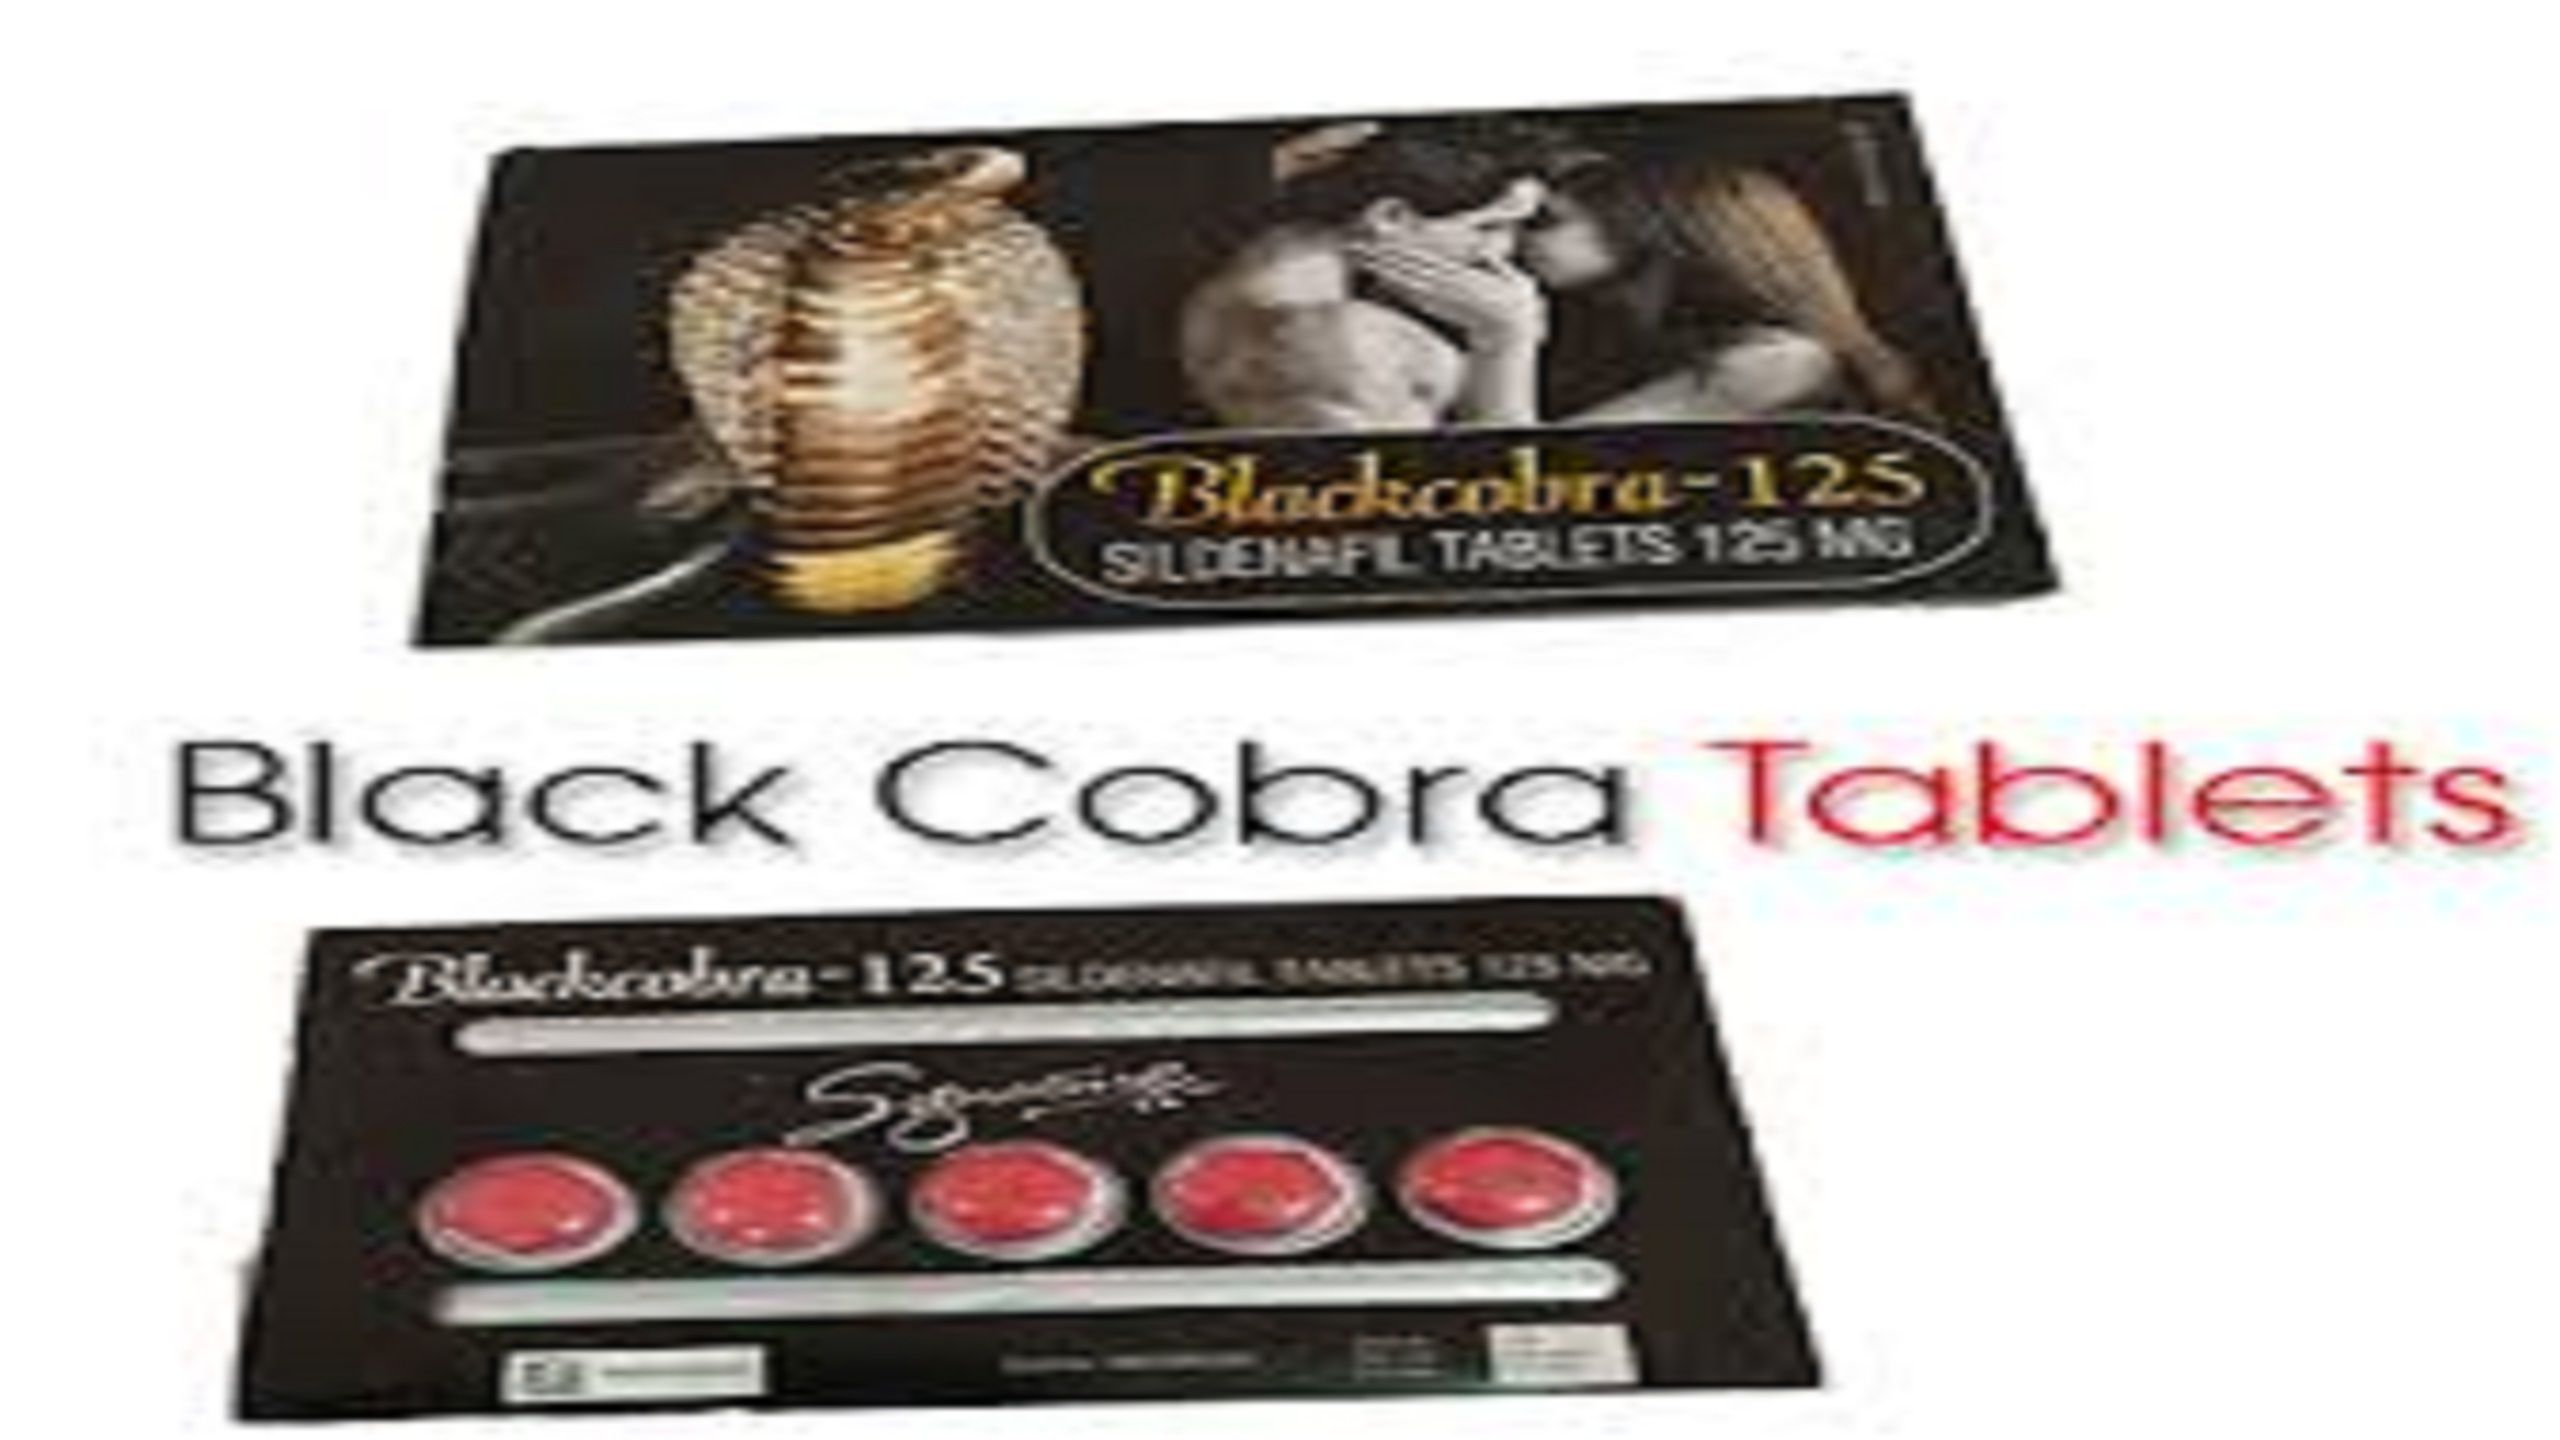 Pin on black cobra tablet 125 mg in lahore 03003147666